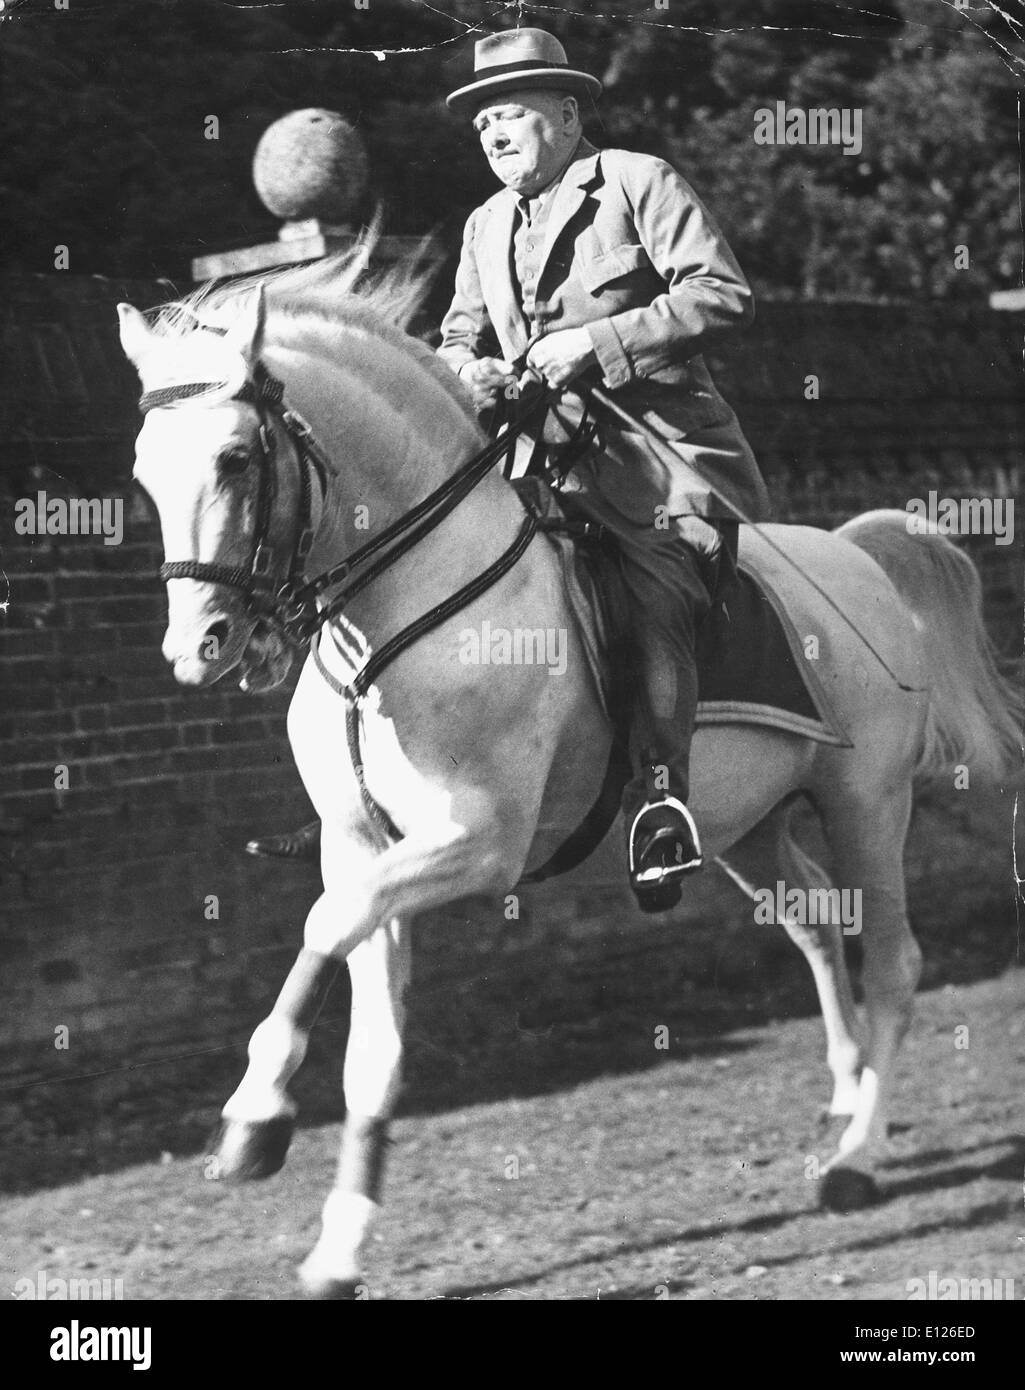 Nov 19, 2007 - London, England, UK - British PM WINSTON CHURCHILL riding horse .co - Stock Image